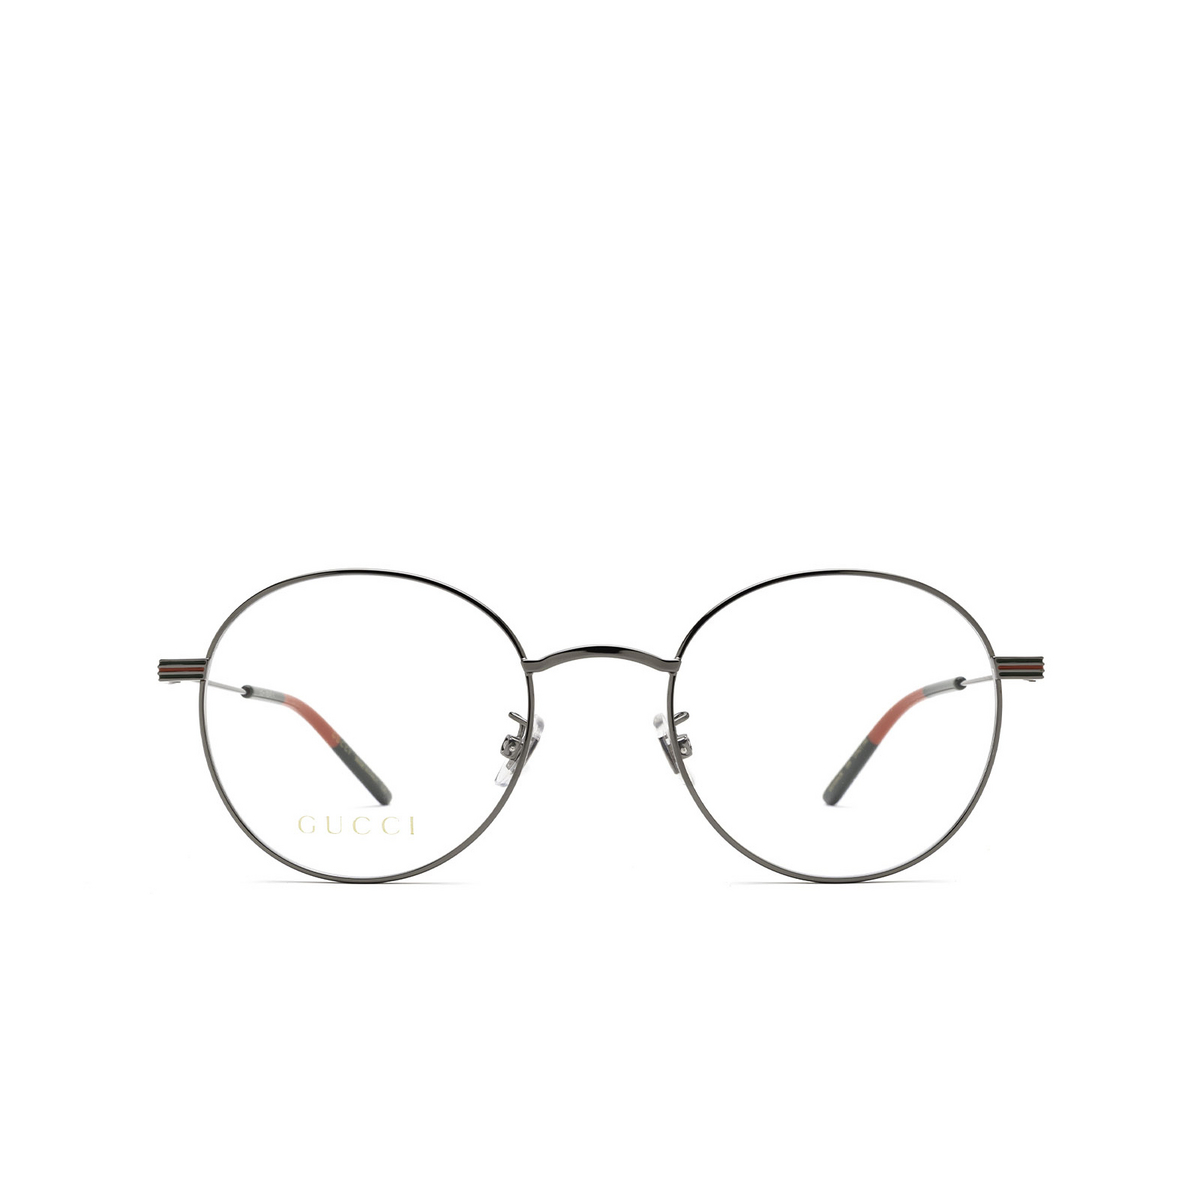 Gucci® Round Eyeglasses: GG1054OK color Ruthenium 004 - front view.